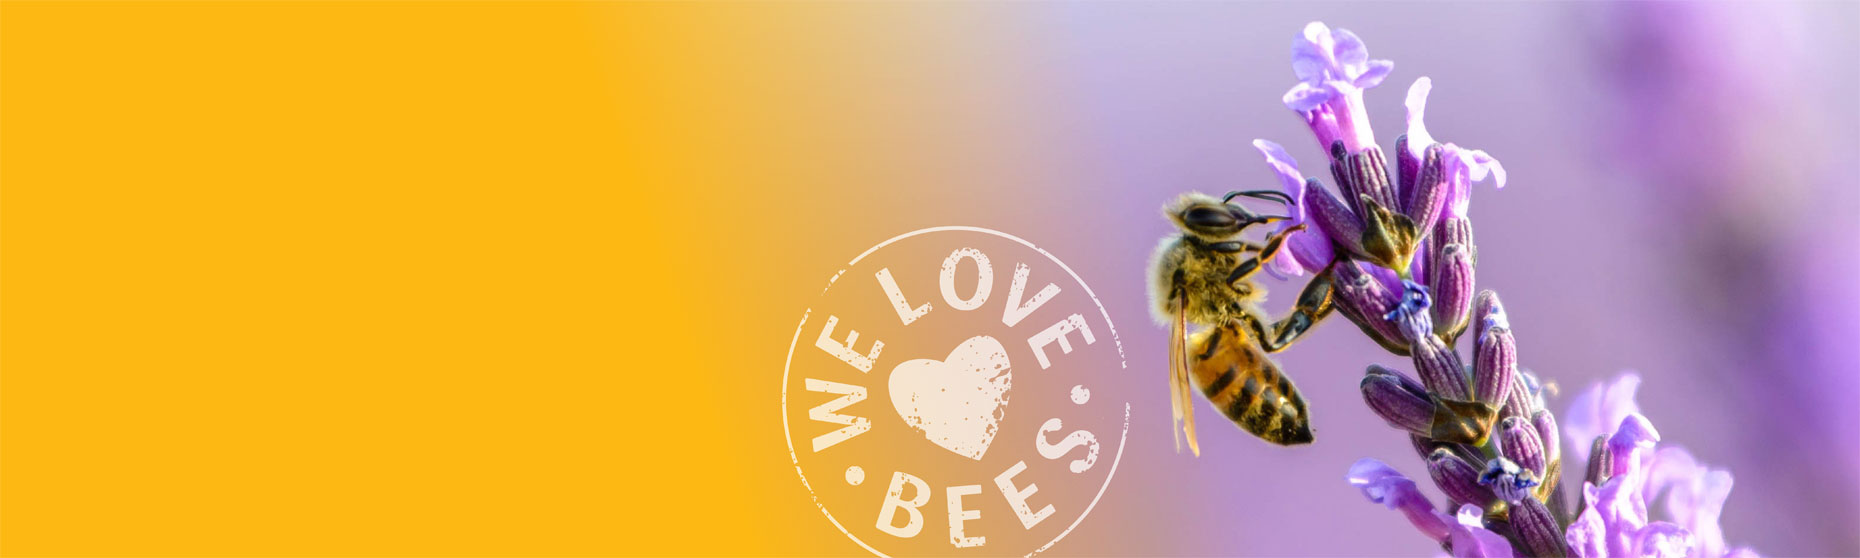 Amazing facts about Bees and Honey